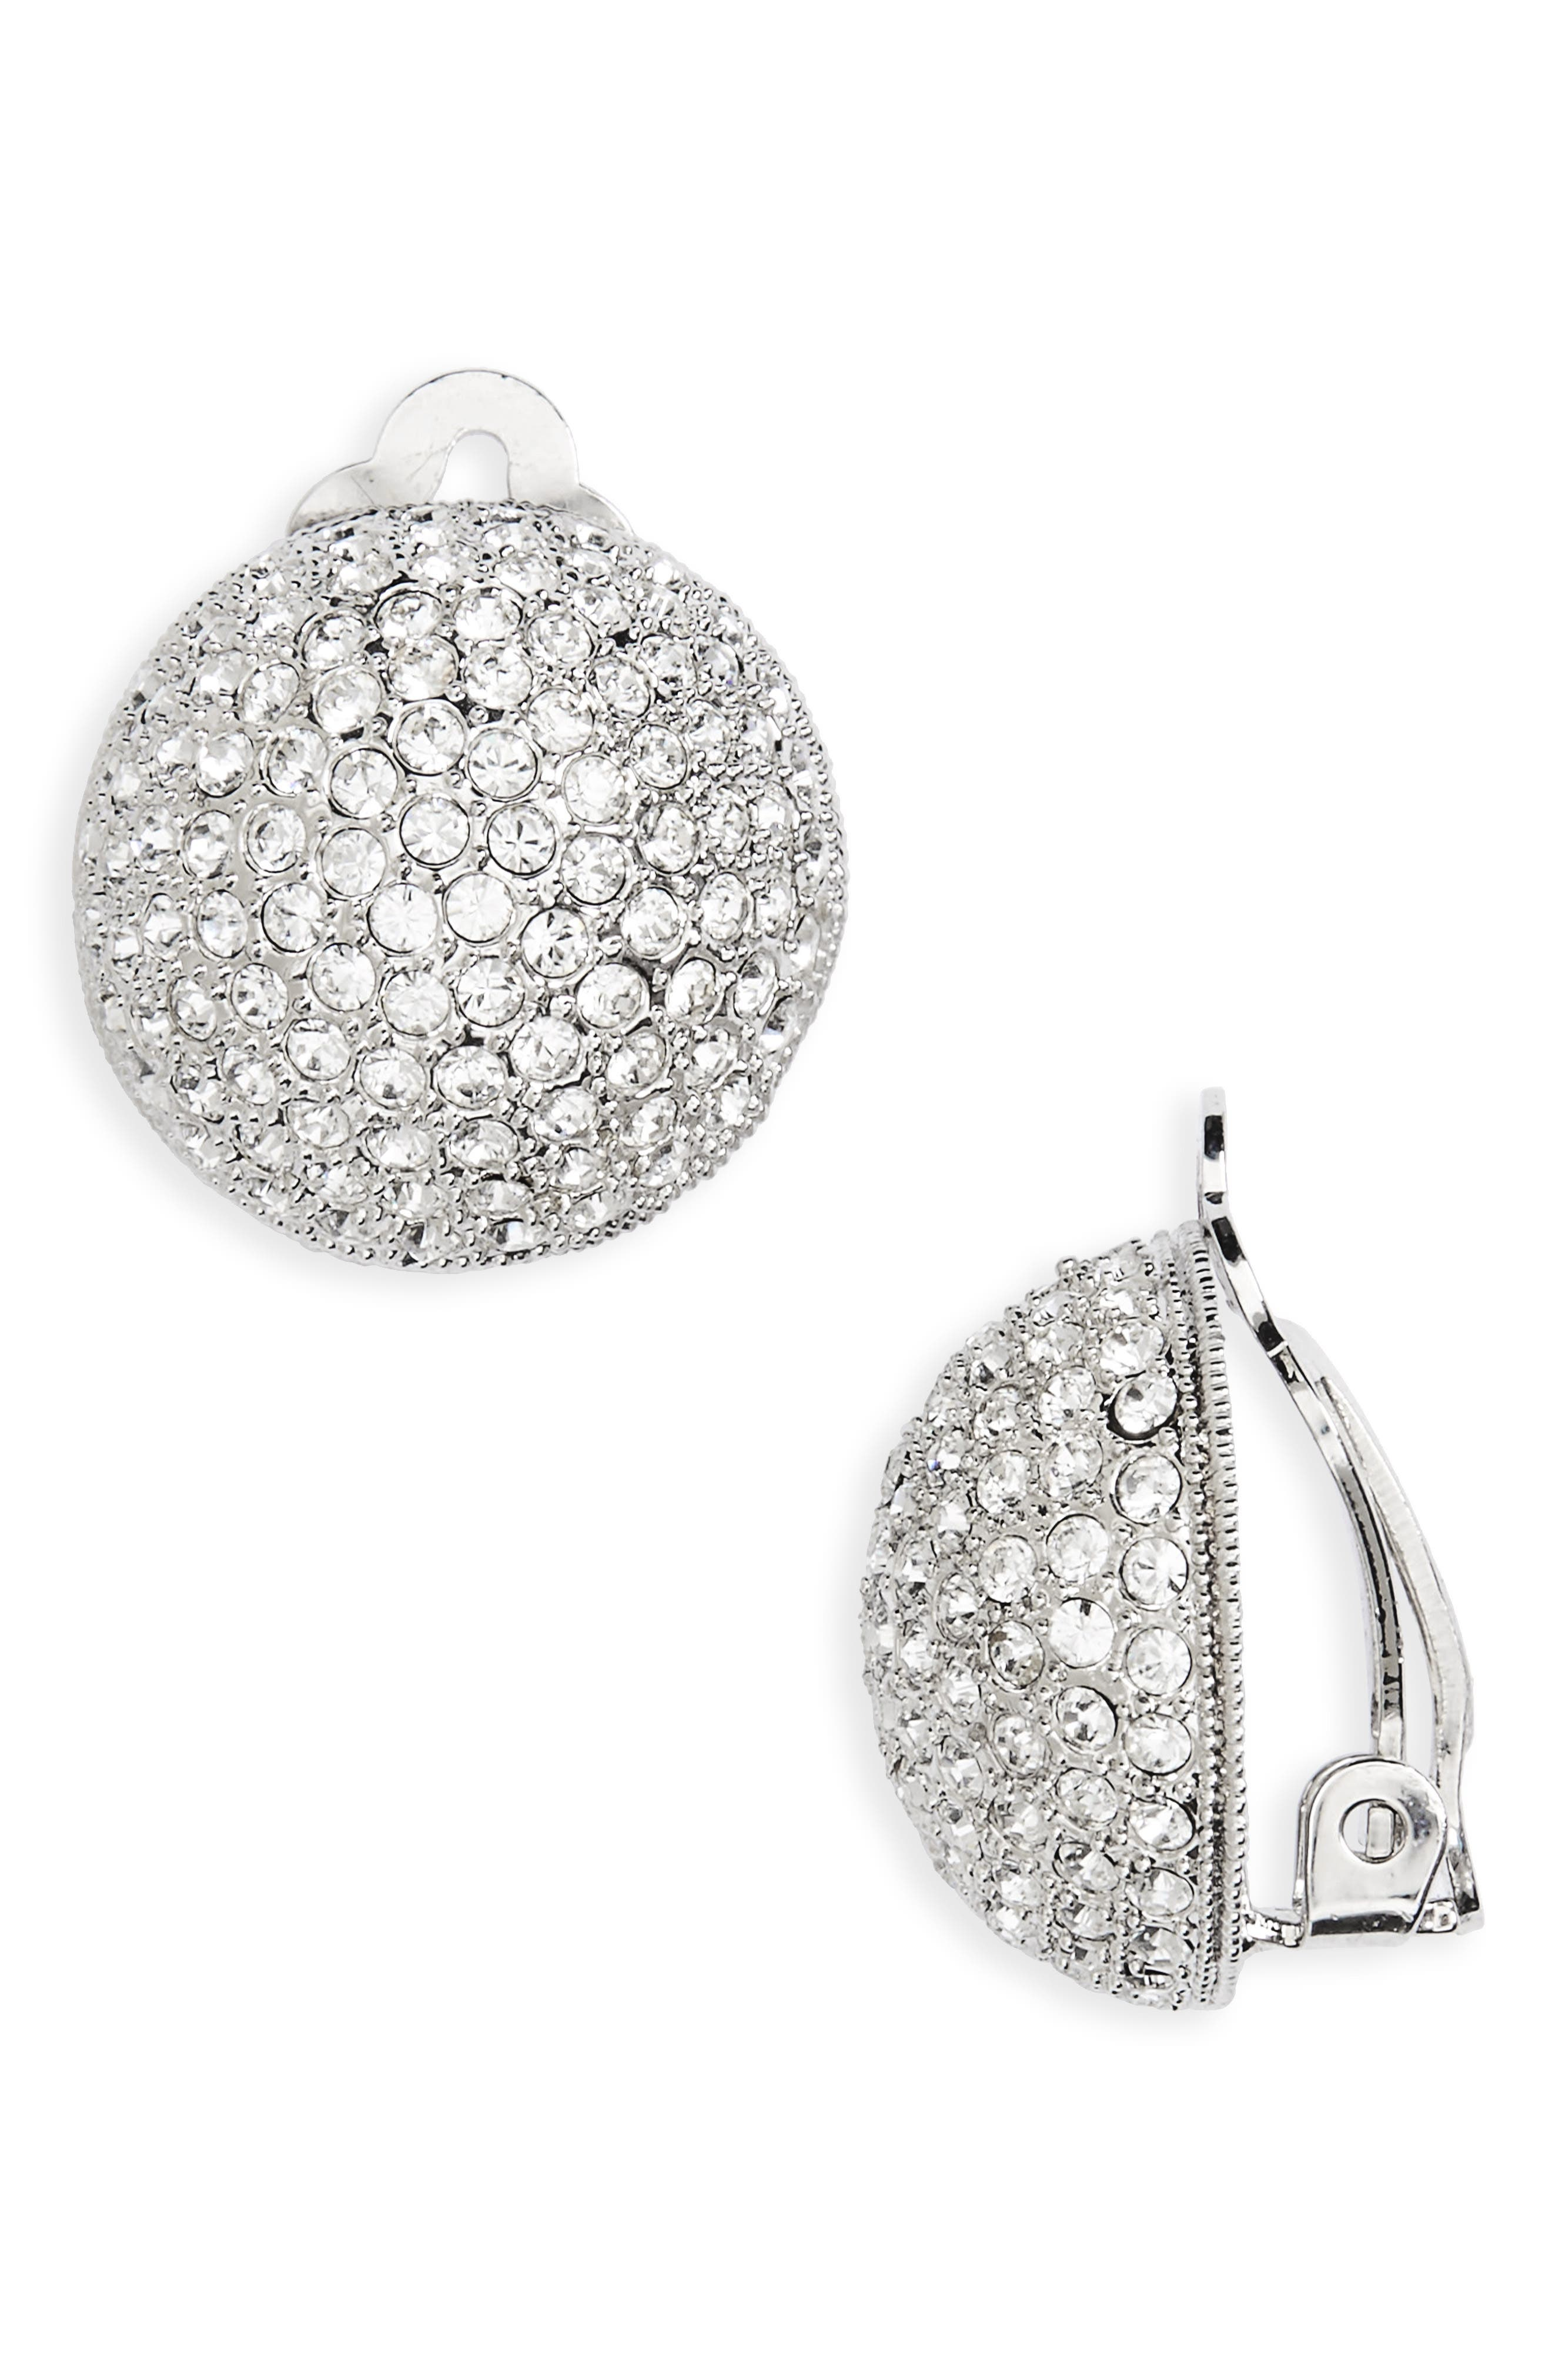 Clip Swarovski Crystal Earrings,                             Main thumbnail 1, color,                             SILVER